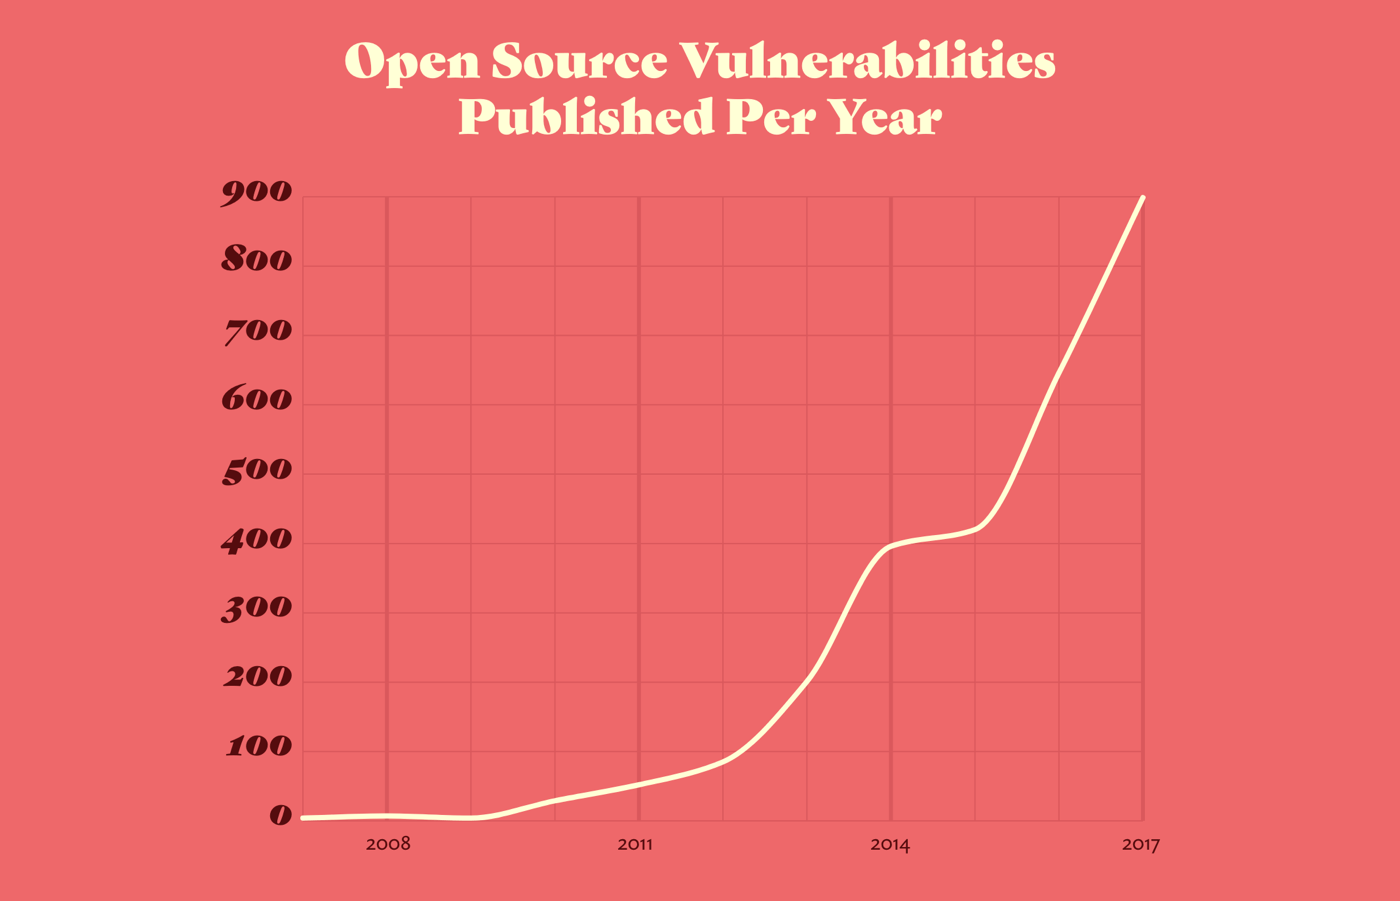 A graph of open source vulnerabilities published per year, between 2007 and 2017. The number increases from a handful in 2008 to around 50 in 2011, 400 in 2014, up to 900 in 2017.